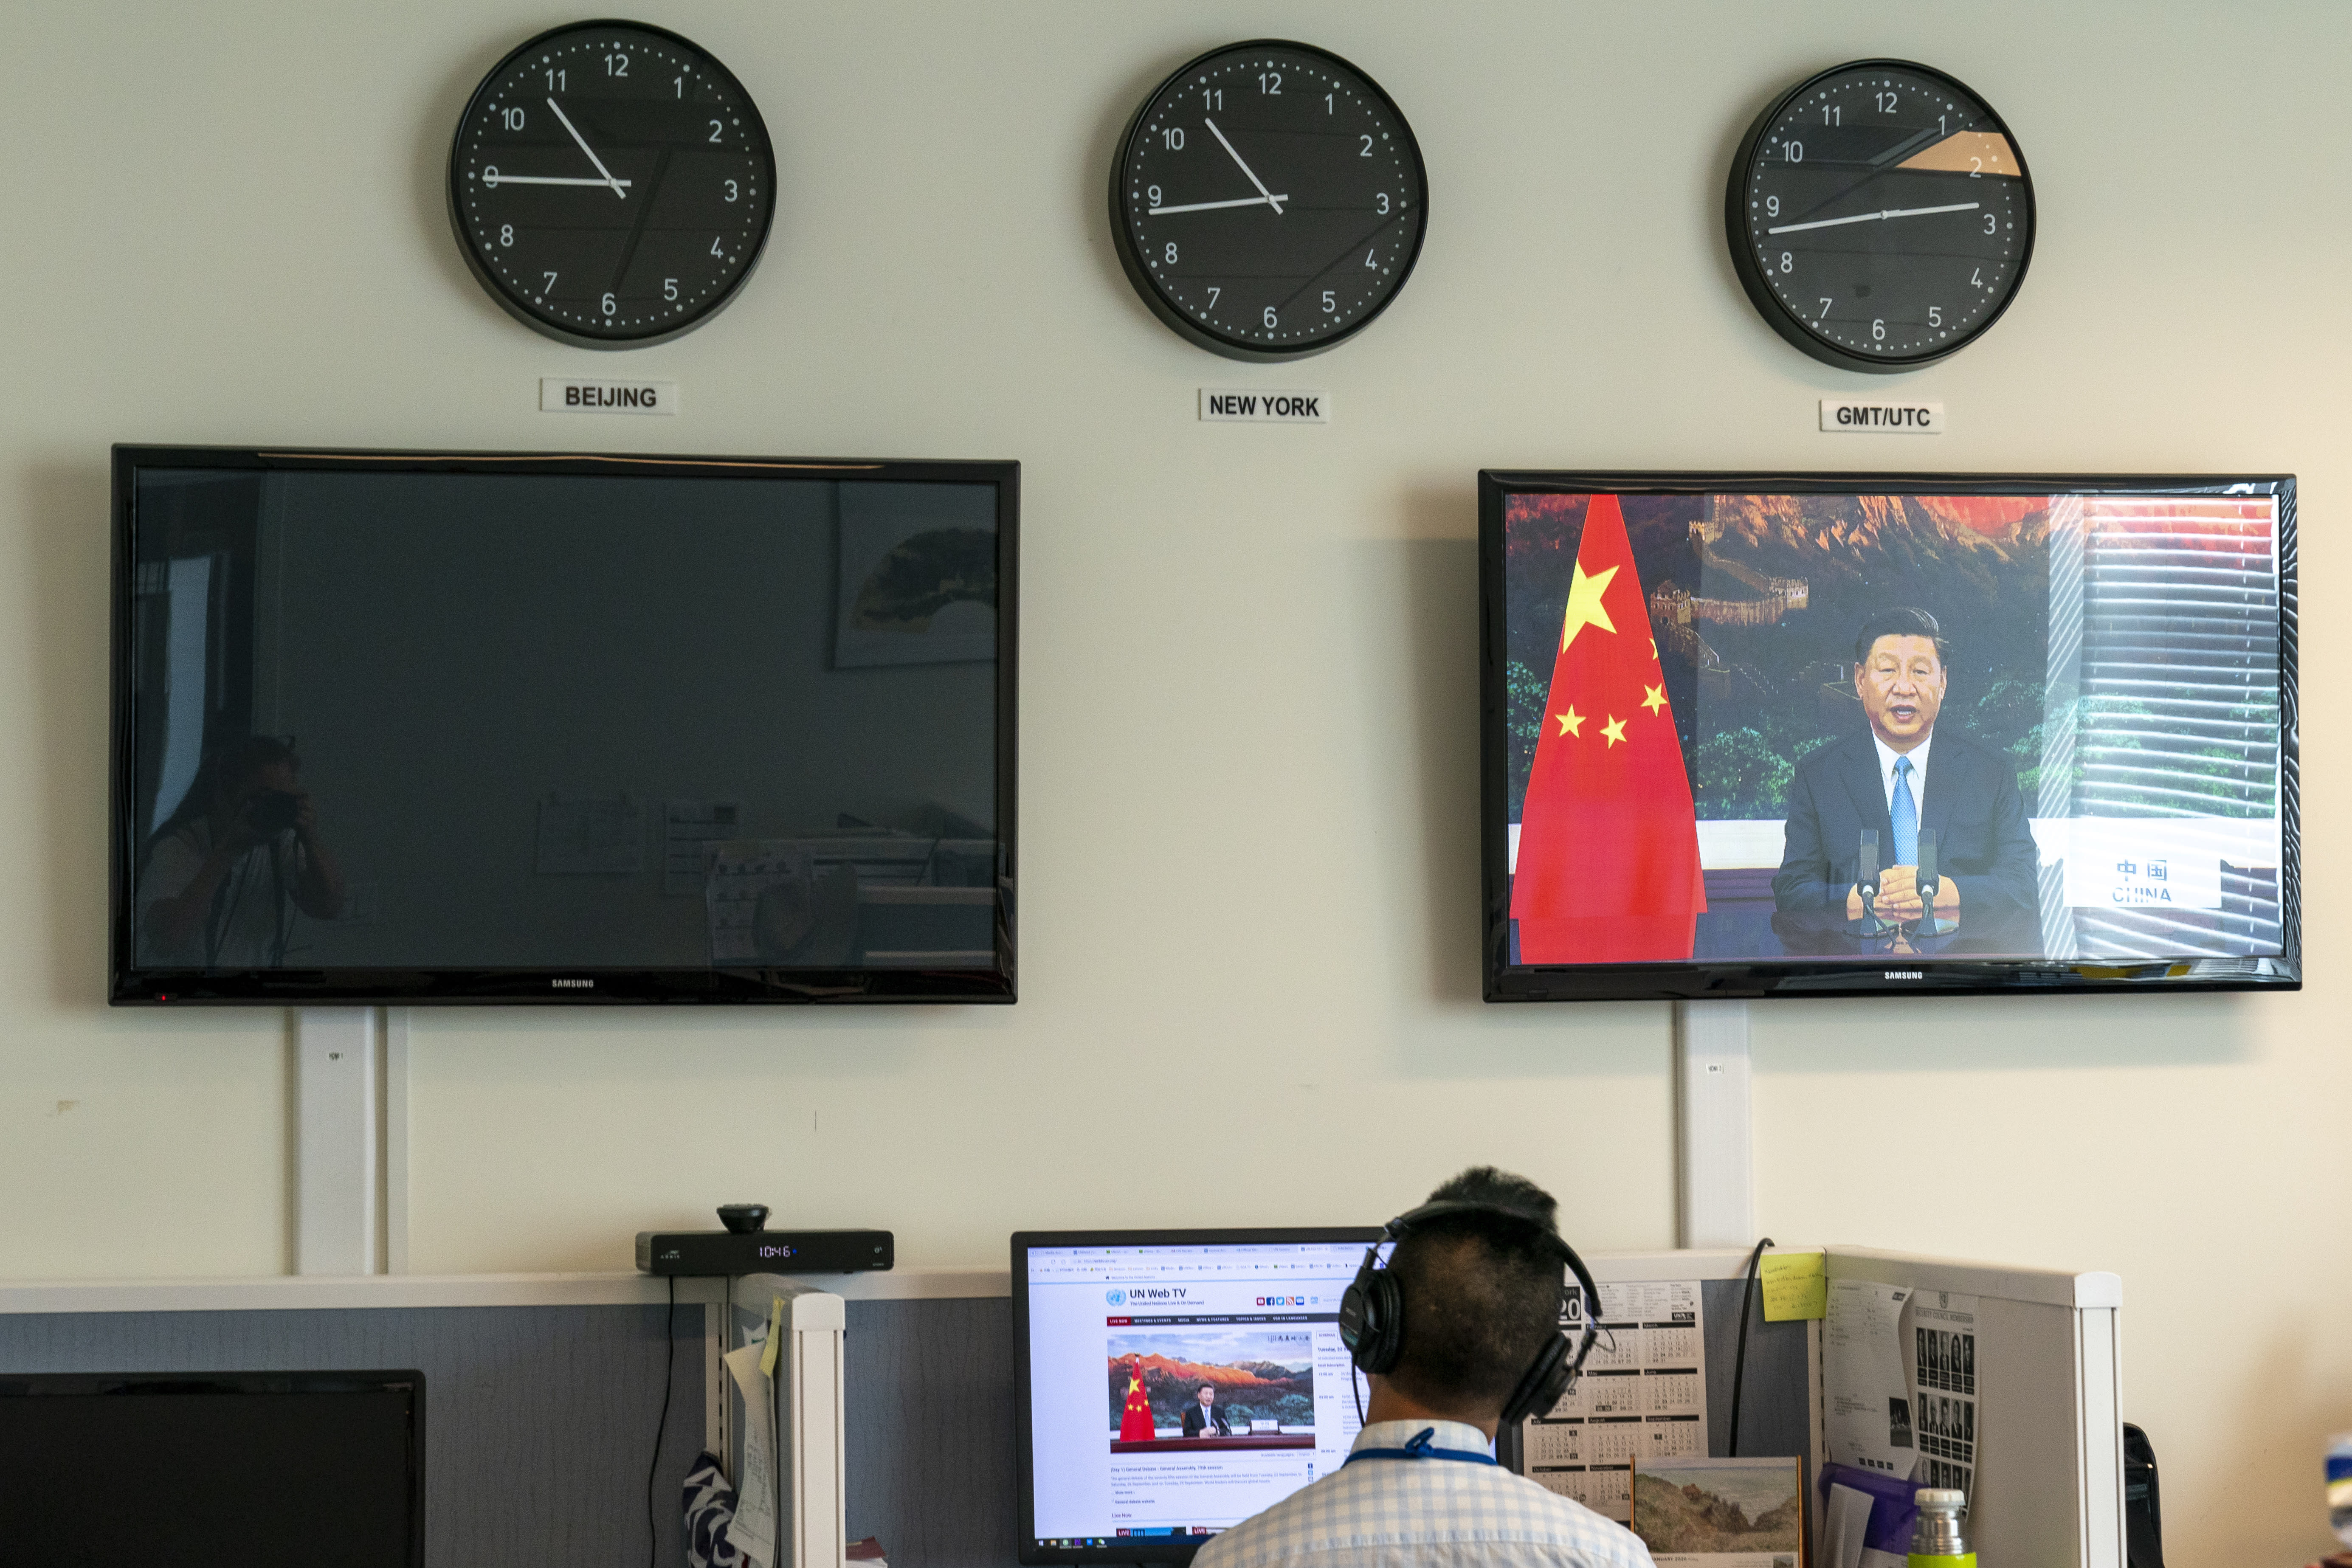 """A reporter with the Xinhua Press Agency watches as President Xi Jinping is seen on a video screen remotely addressing the 75th session of the United Nations General Assembly, Tuesday, Sept. 22, 2020, at U.N. headquarters. This year's annual gathering of world leaders at U.N. headquarters will be almost entirely """"virtual."""" Leaders have been asked to pre-record their speeches, which will be shown in the General Assembly chamber, where each of the 193 U.N. member nations are allowed to have one diplomat present. (AP Photo/Mary Altaffer)"""